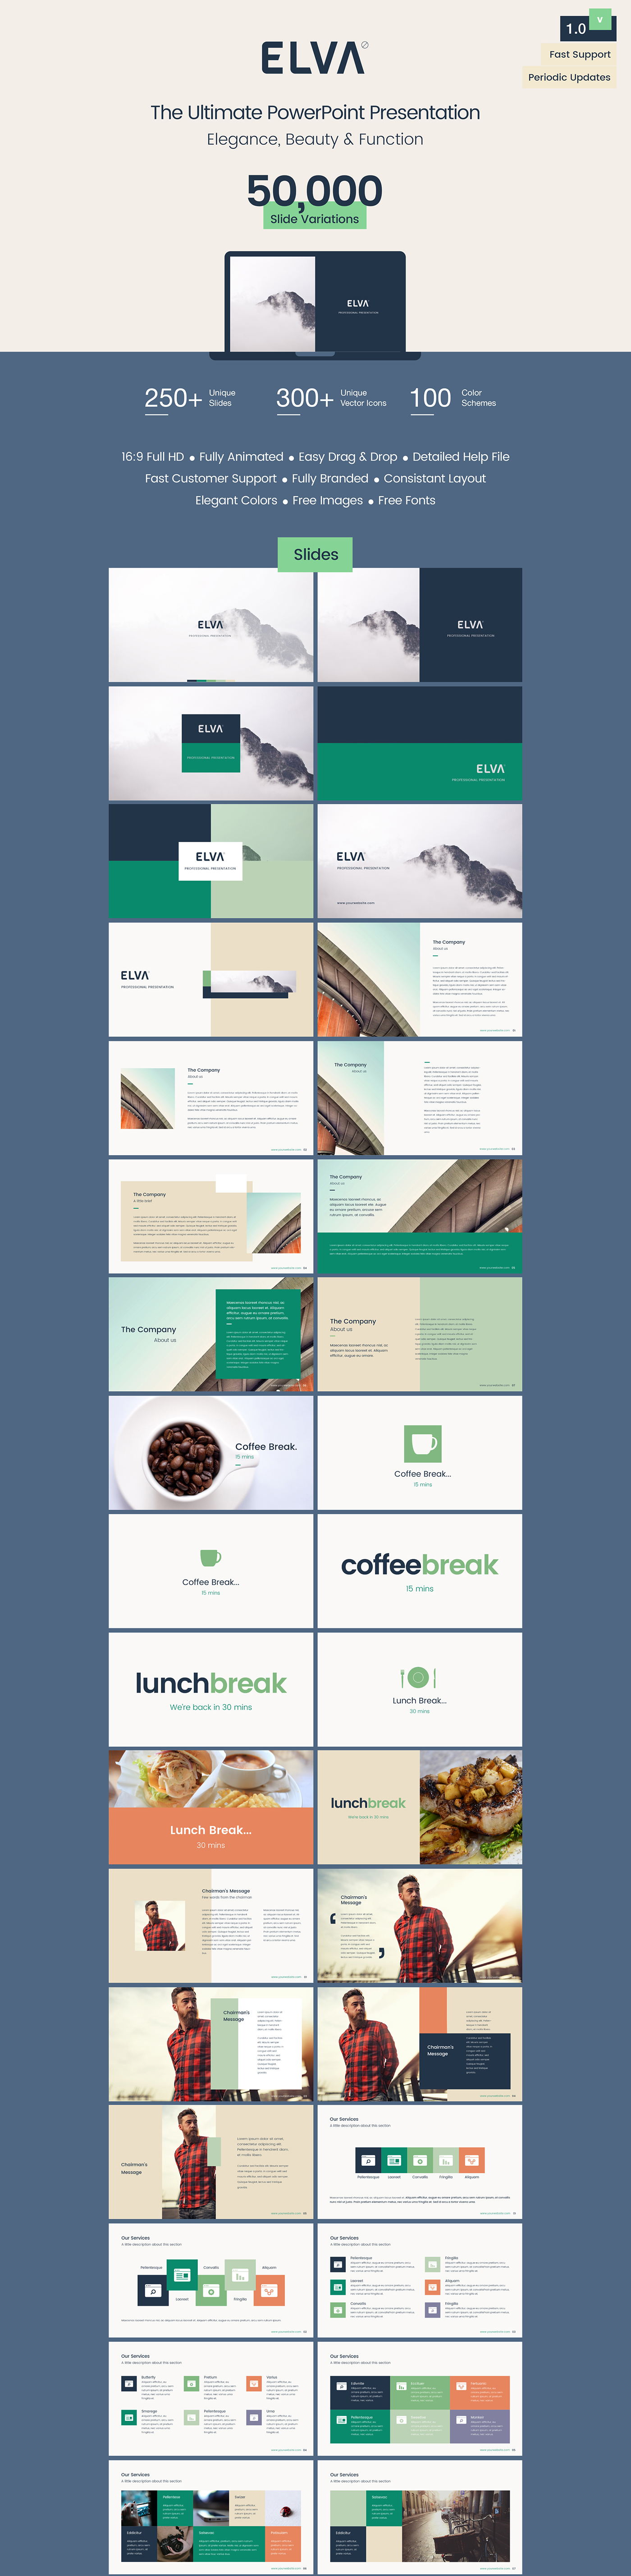 ultimate powerpoint presentation template elva on behance